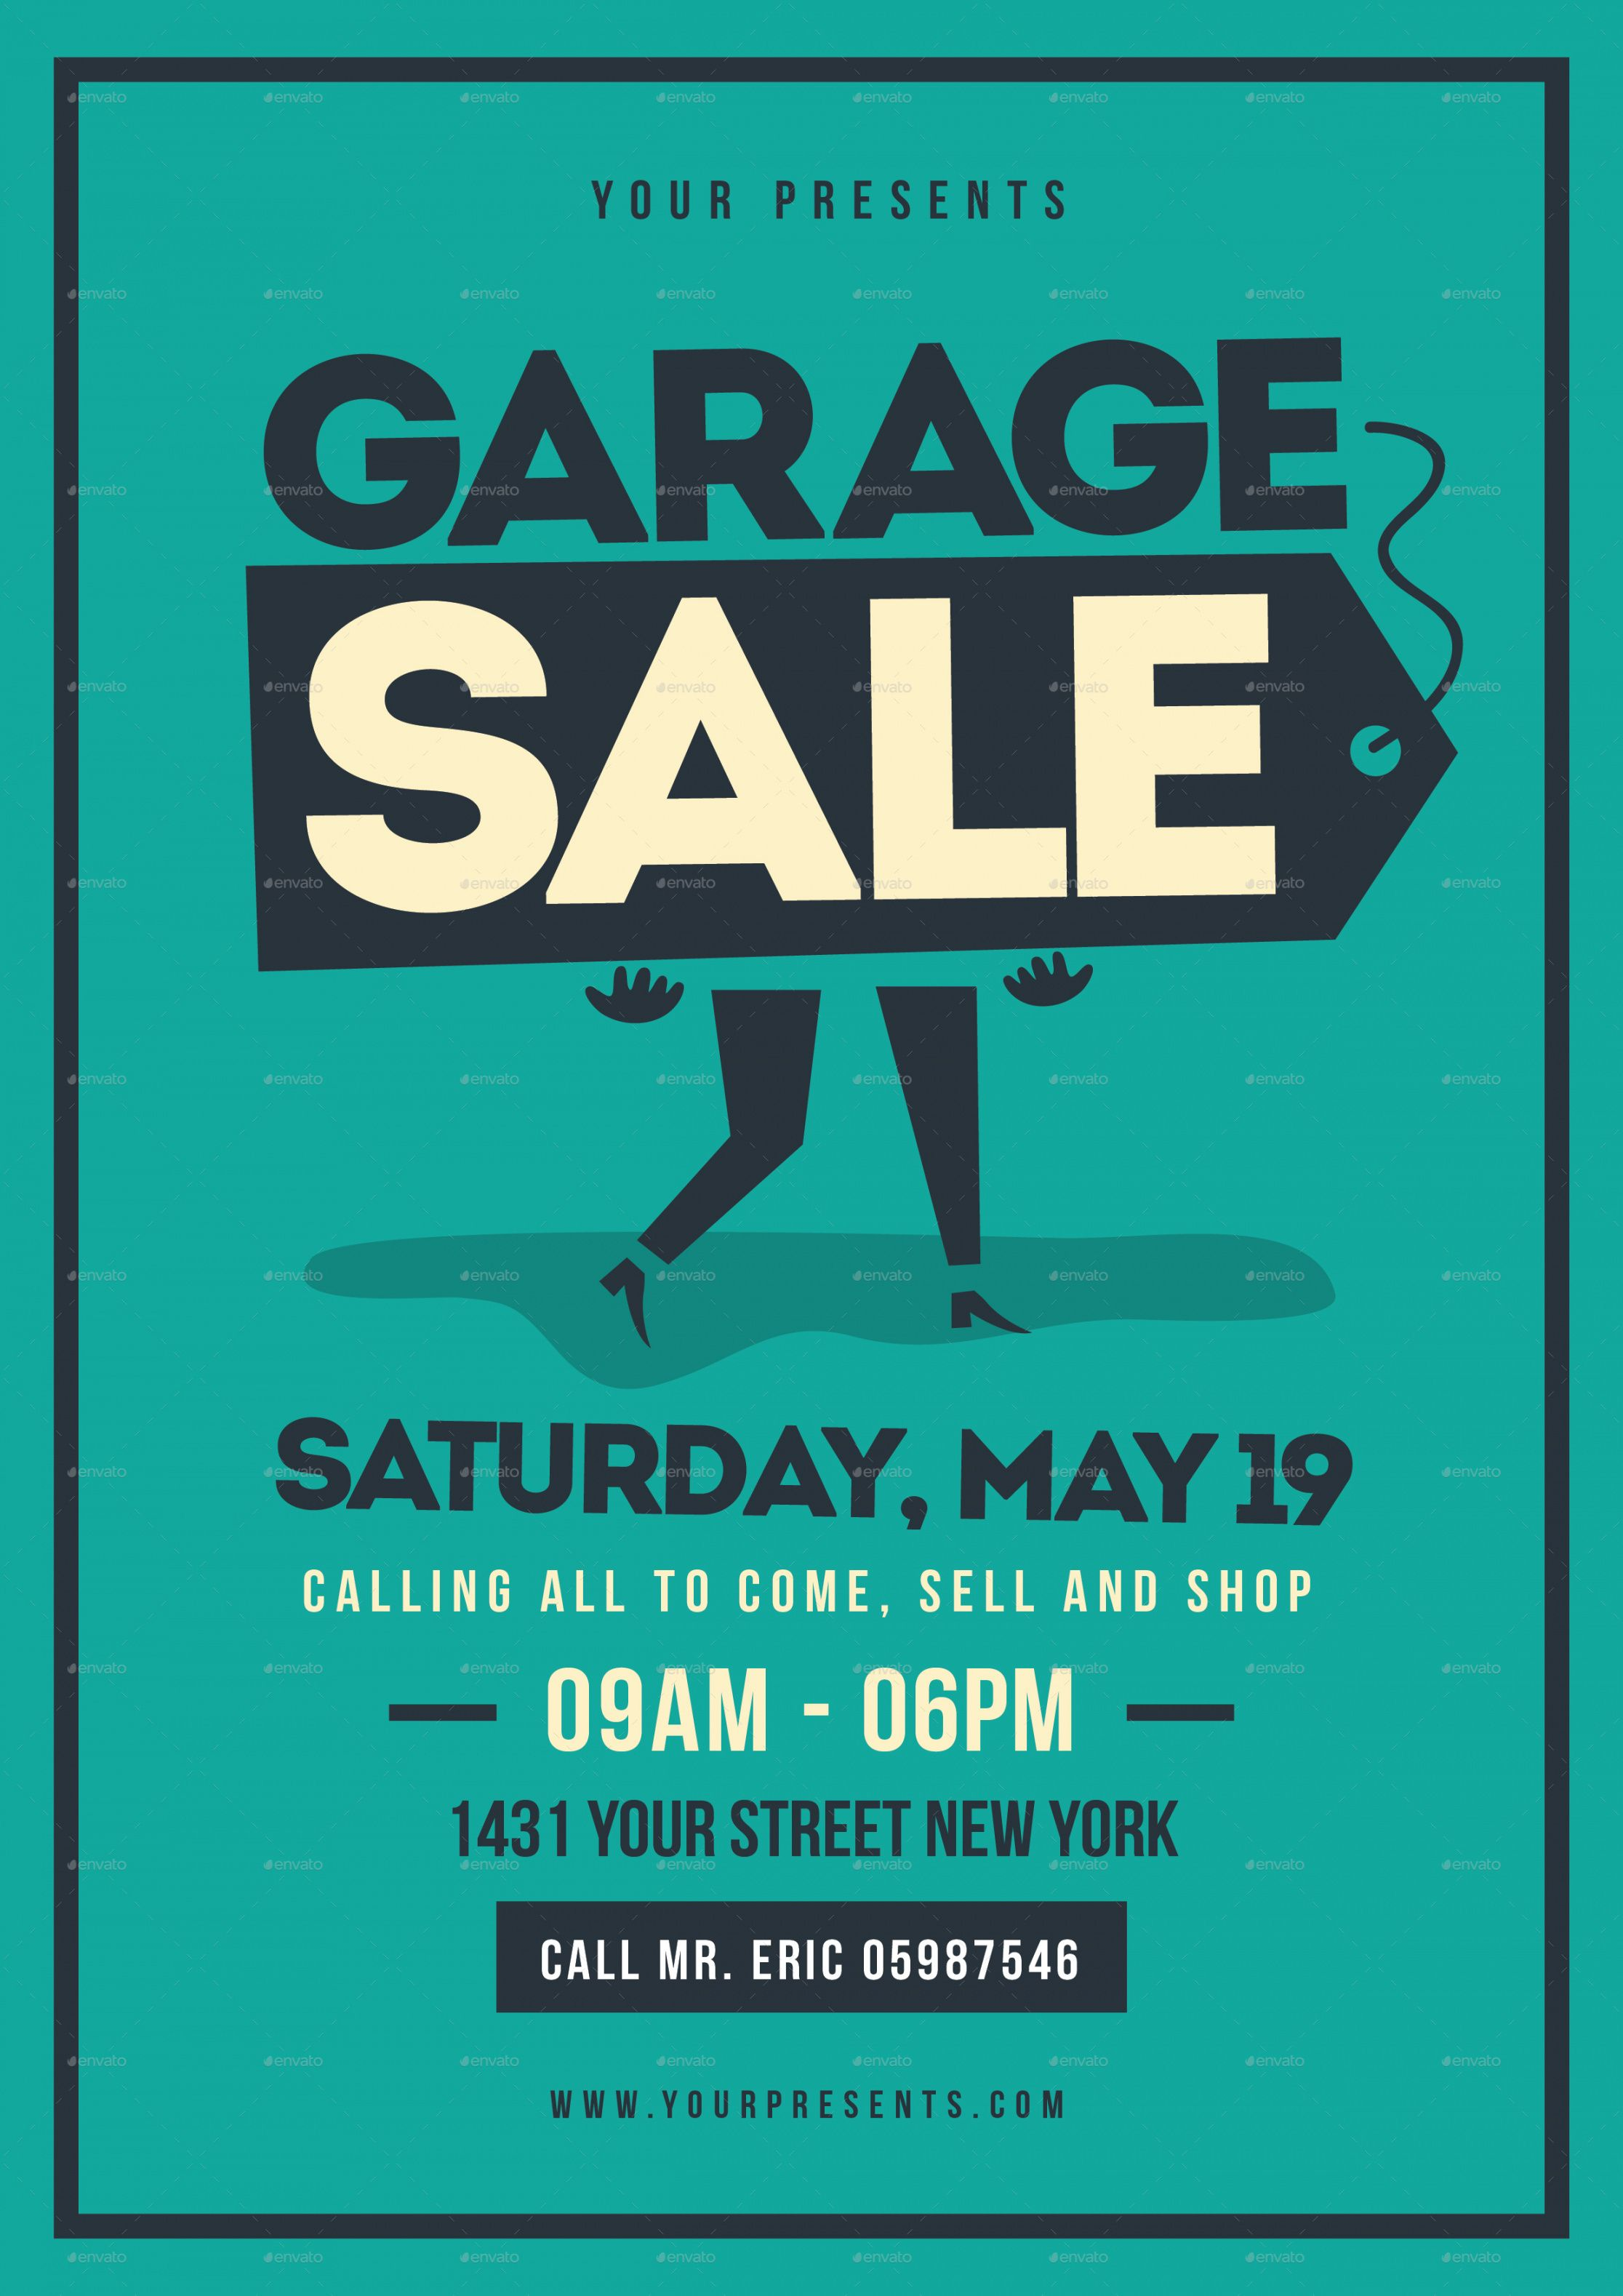 Get Our Example Of Moving Sale Flyer Template For Sale Sign Sale Flyer Flyer Design Templates Yard sale flyer template free